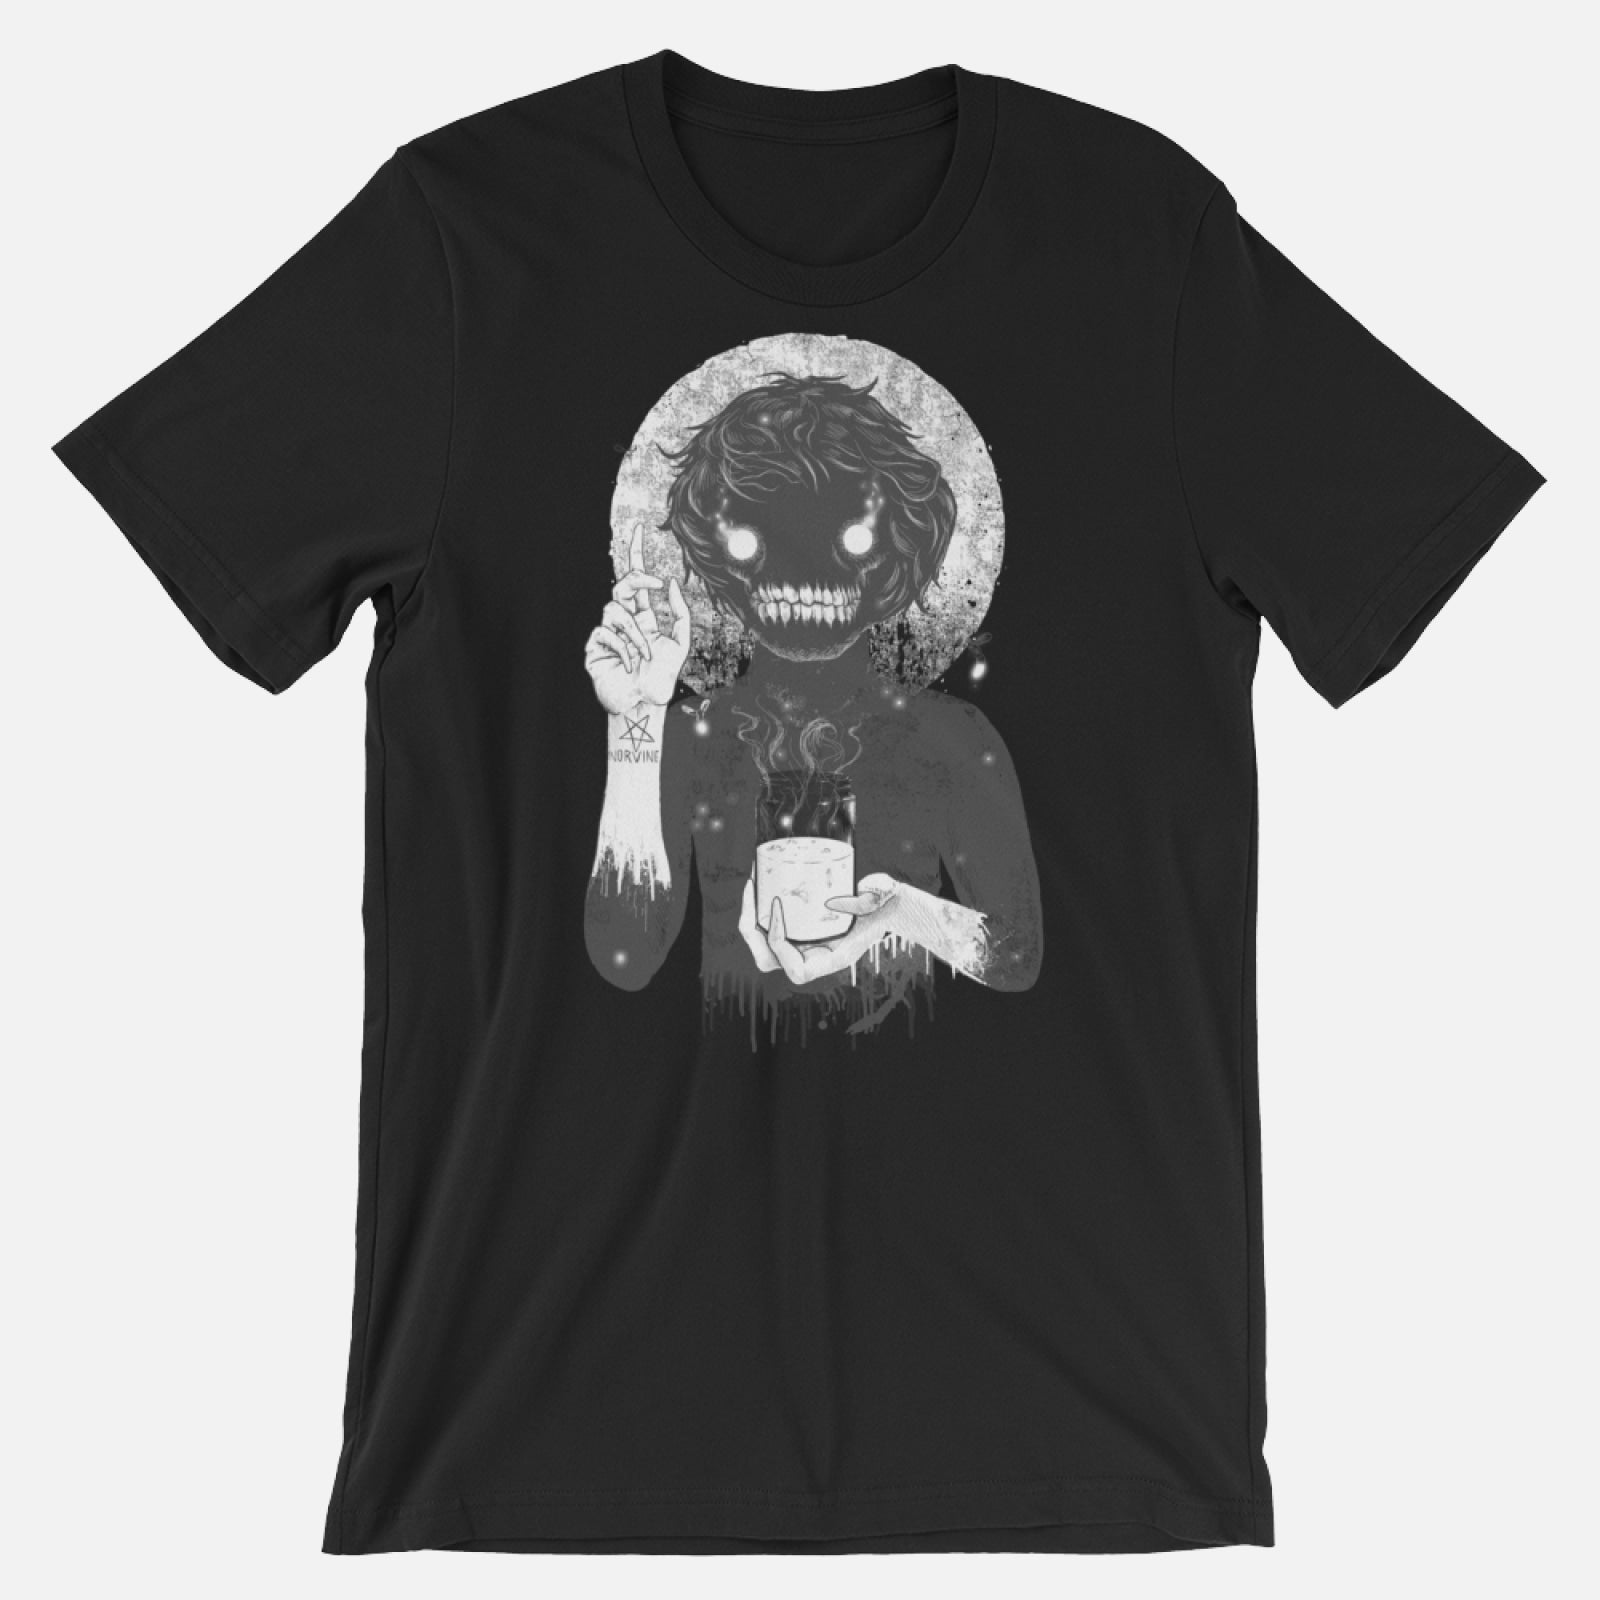 Creep Black / S T-Shirt Norvine